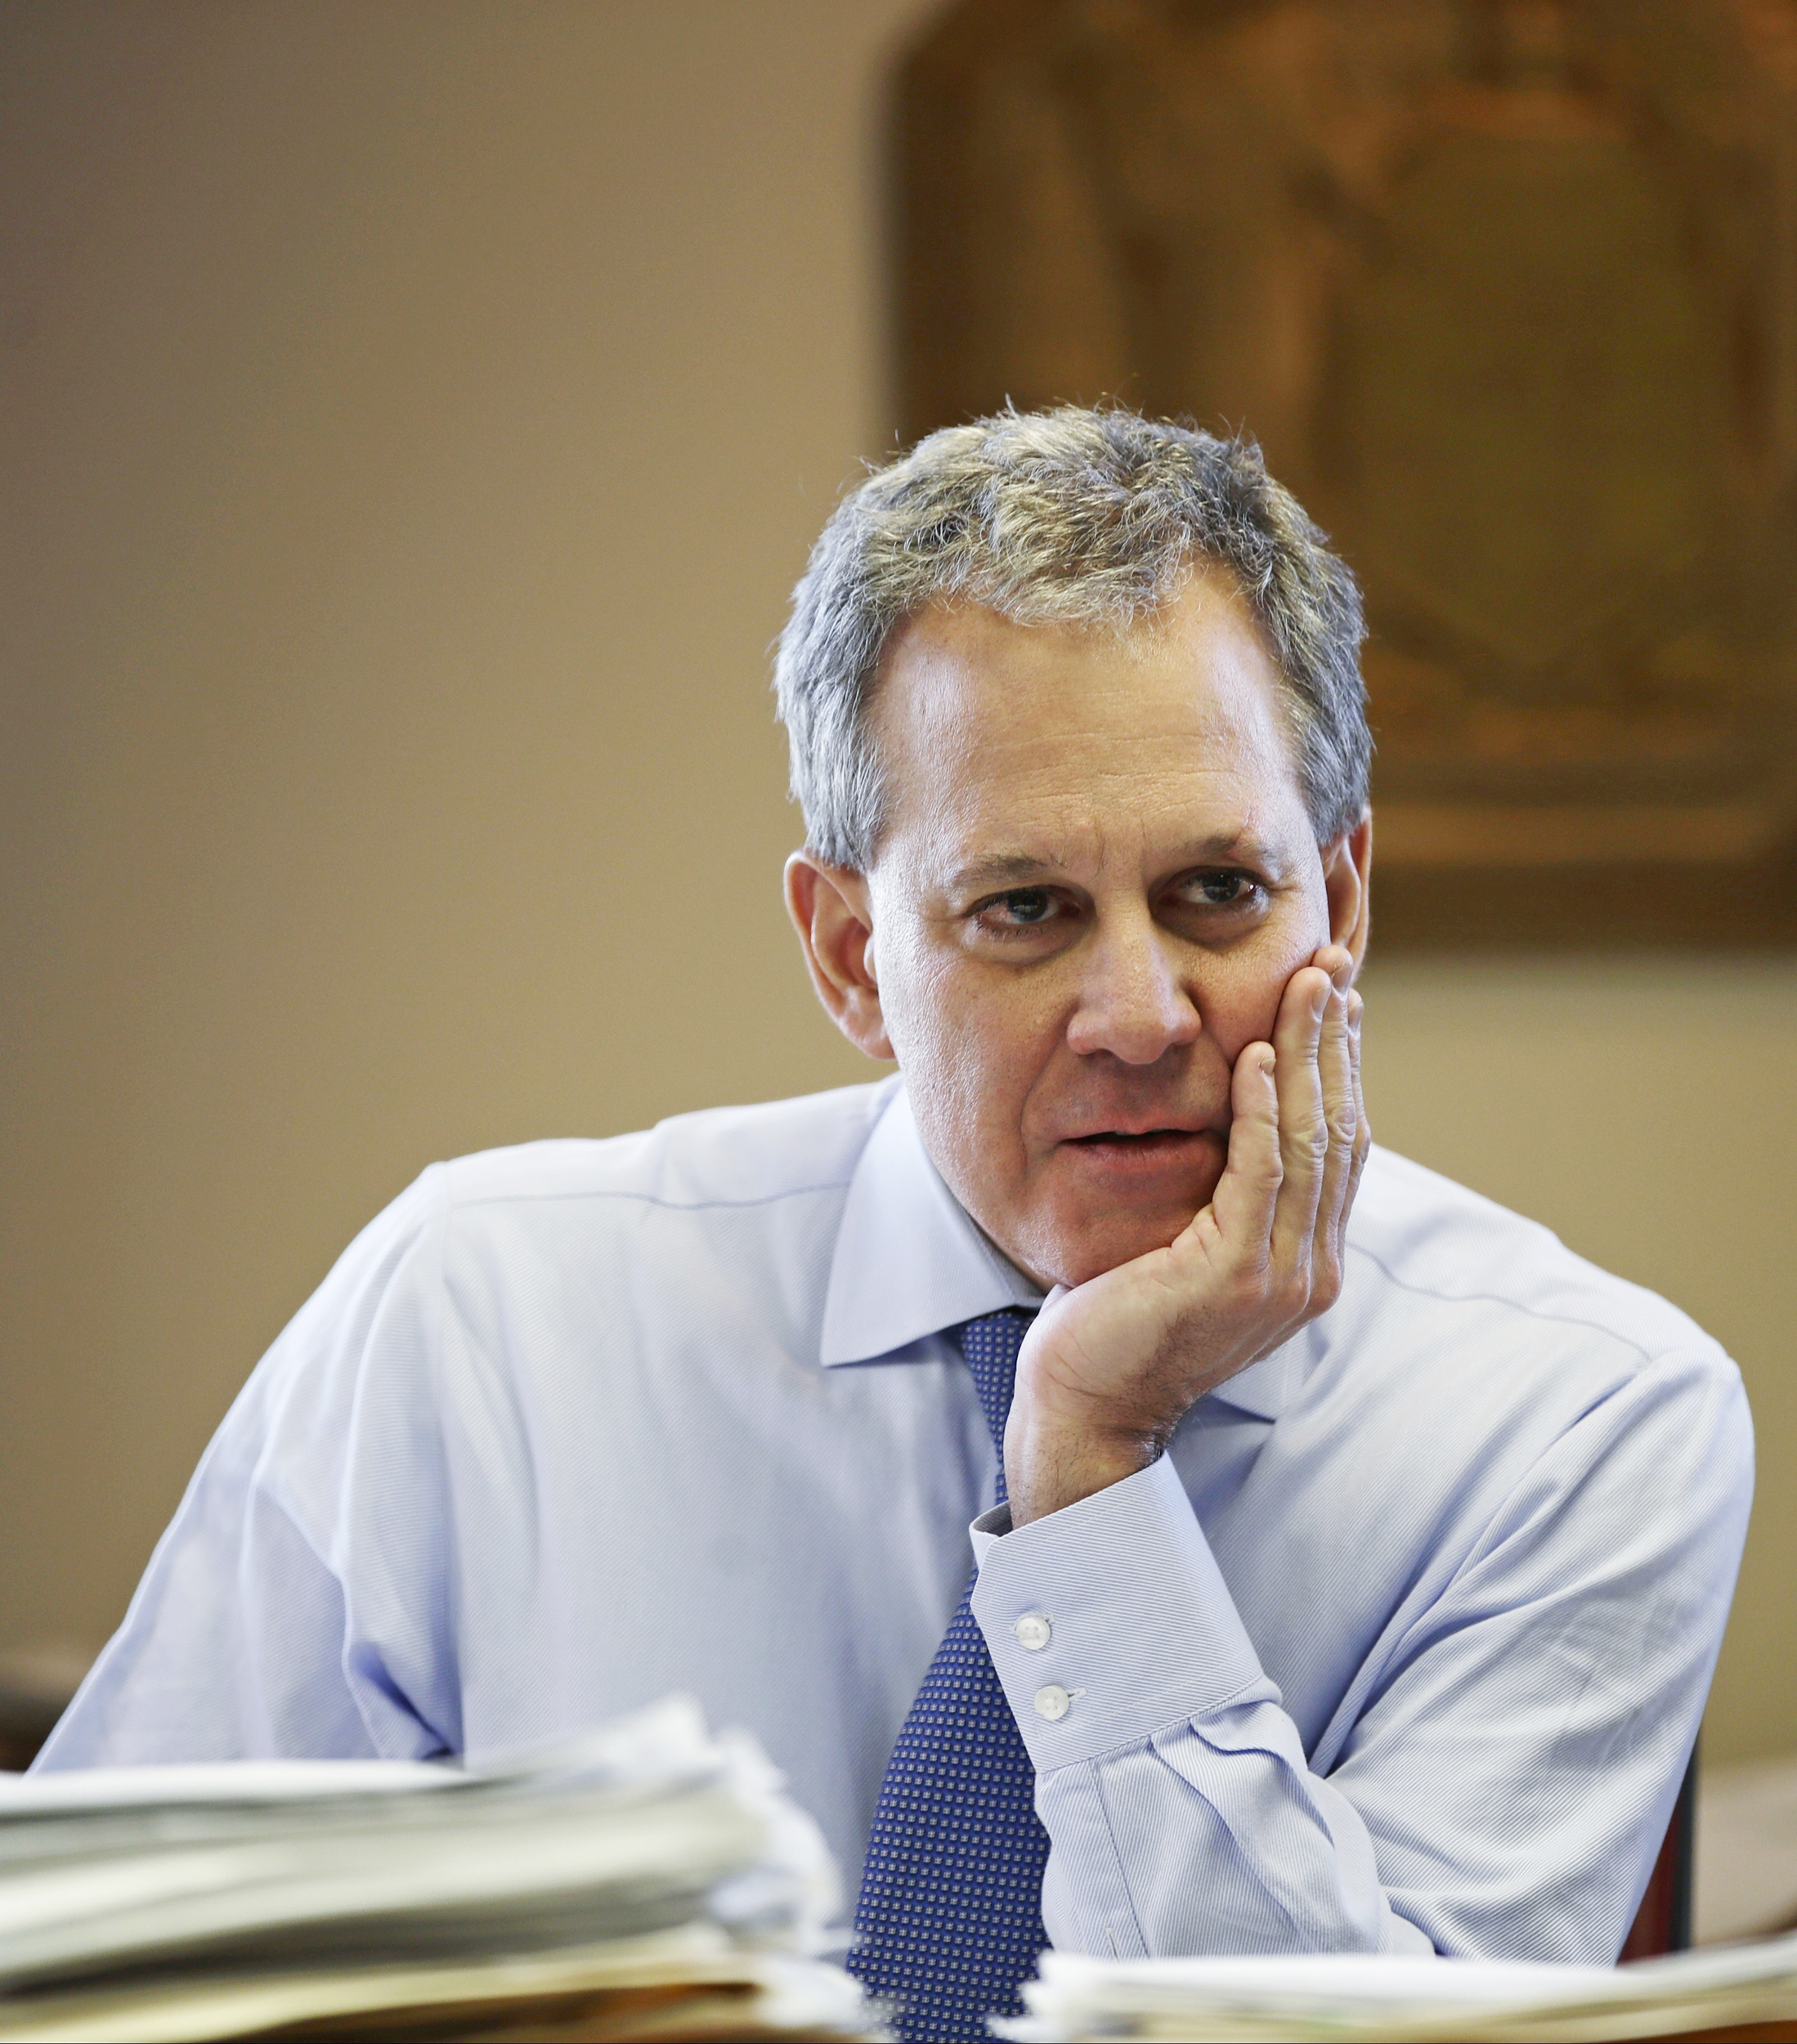 New York prosecutors probing ousted A G  Schneiderman as